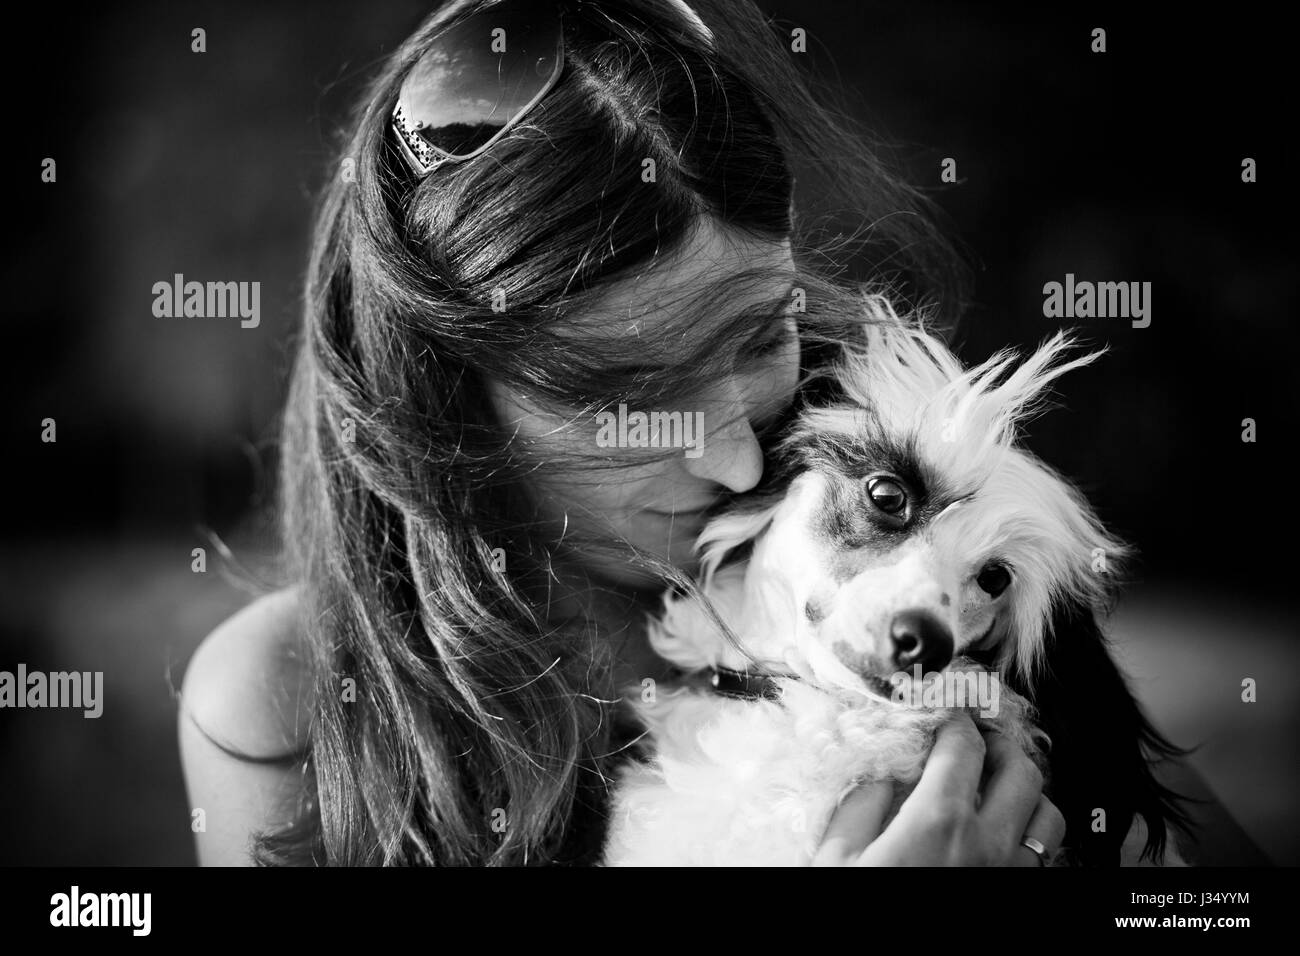 Beautiful young woman and her chinese crested dog outdoors. Monochrome. Grain added. - Stock Image